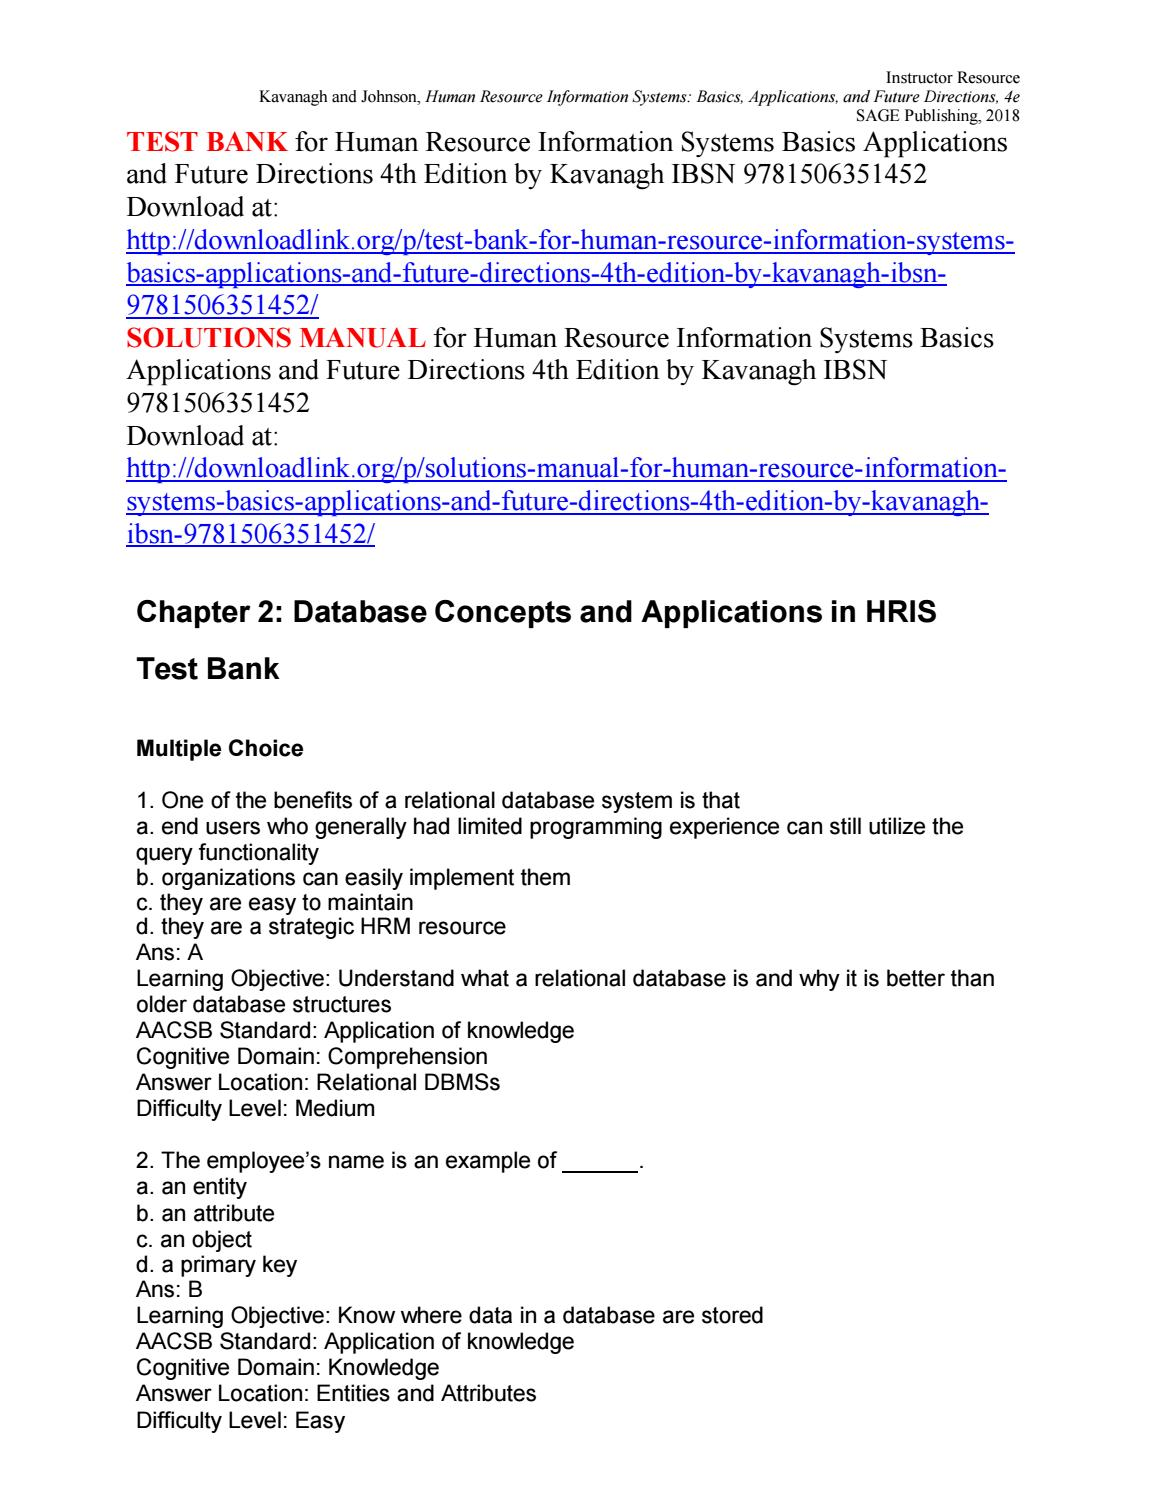 Test Bank For Human Resource Information Systems Basics